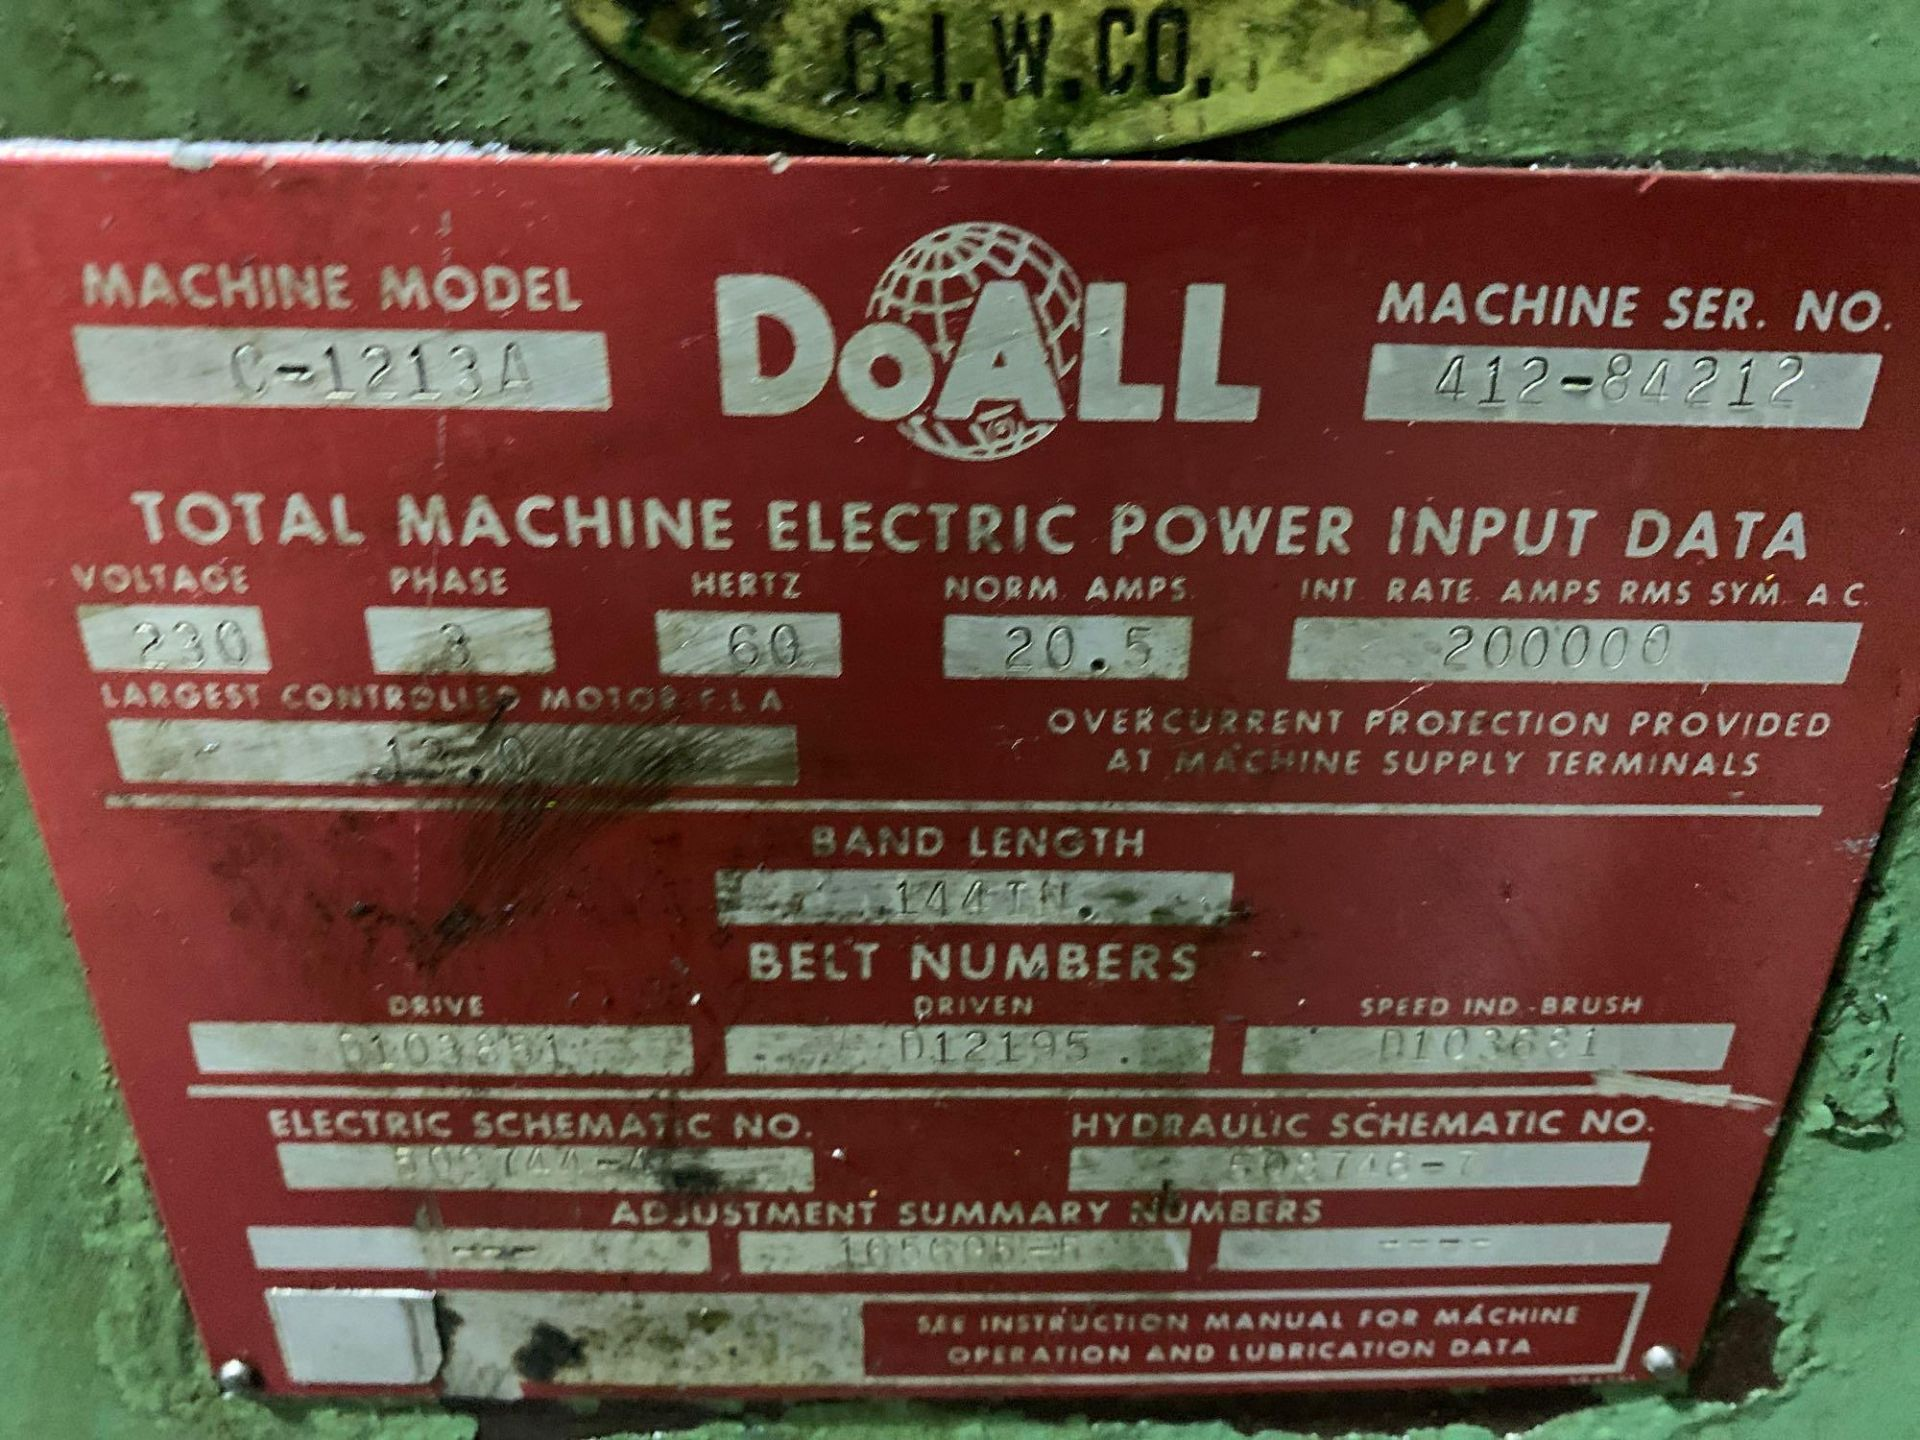 DoAllSemi-Automatic Horizontal Band Saw Model: C-1213a s/n: 412-84212 made in the usa capacity: rec - Image 14 of 16